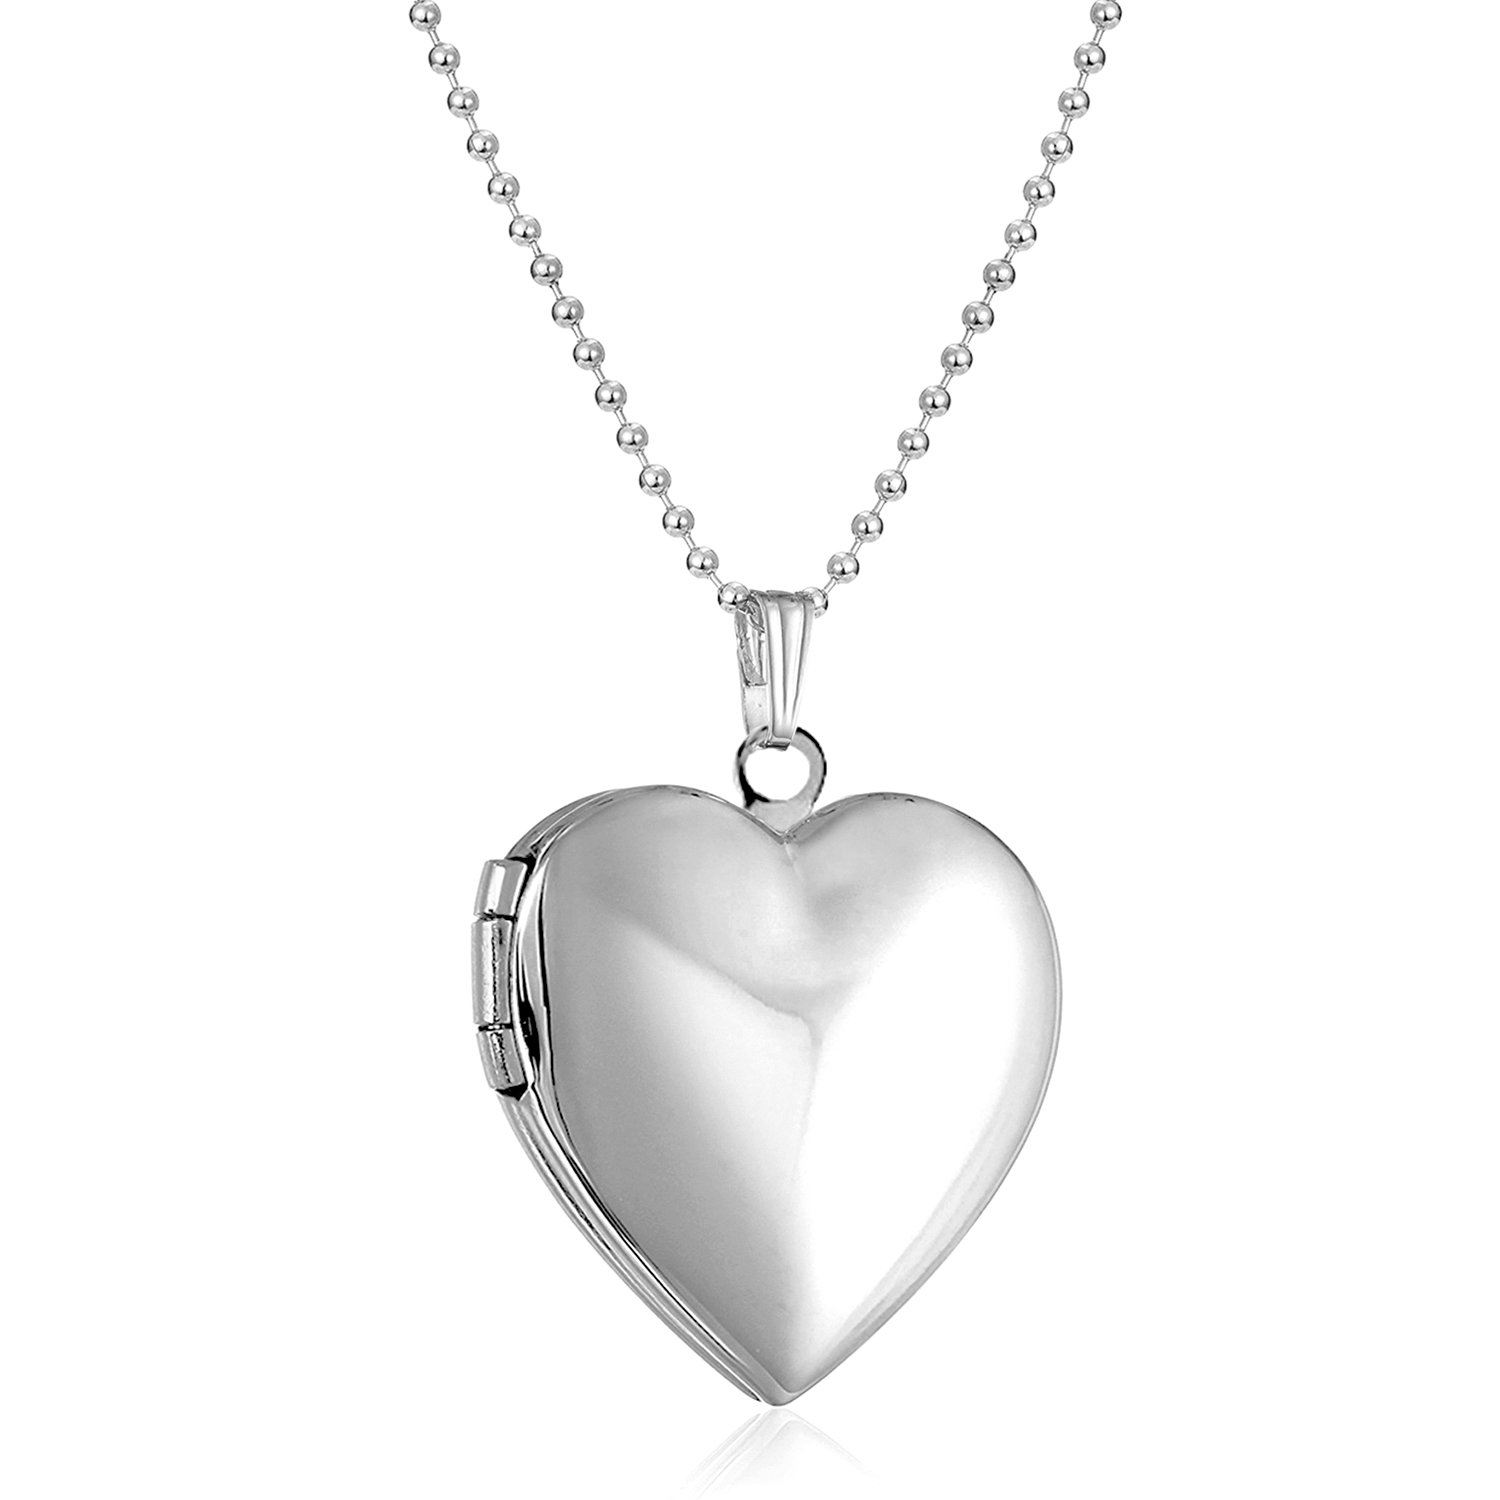 Polished Love Heart Locket Pendant Necklace Hold Pictures Locket for Women Kids Lockets Rose Gold Plated XingYue pandöra charms SCC035